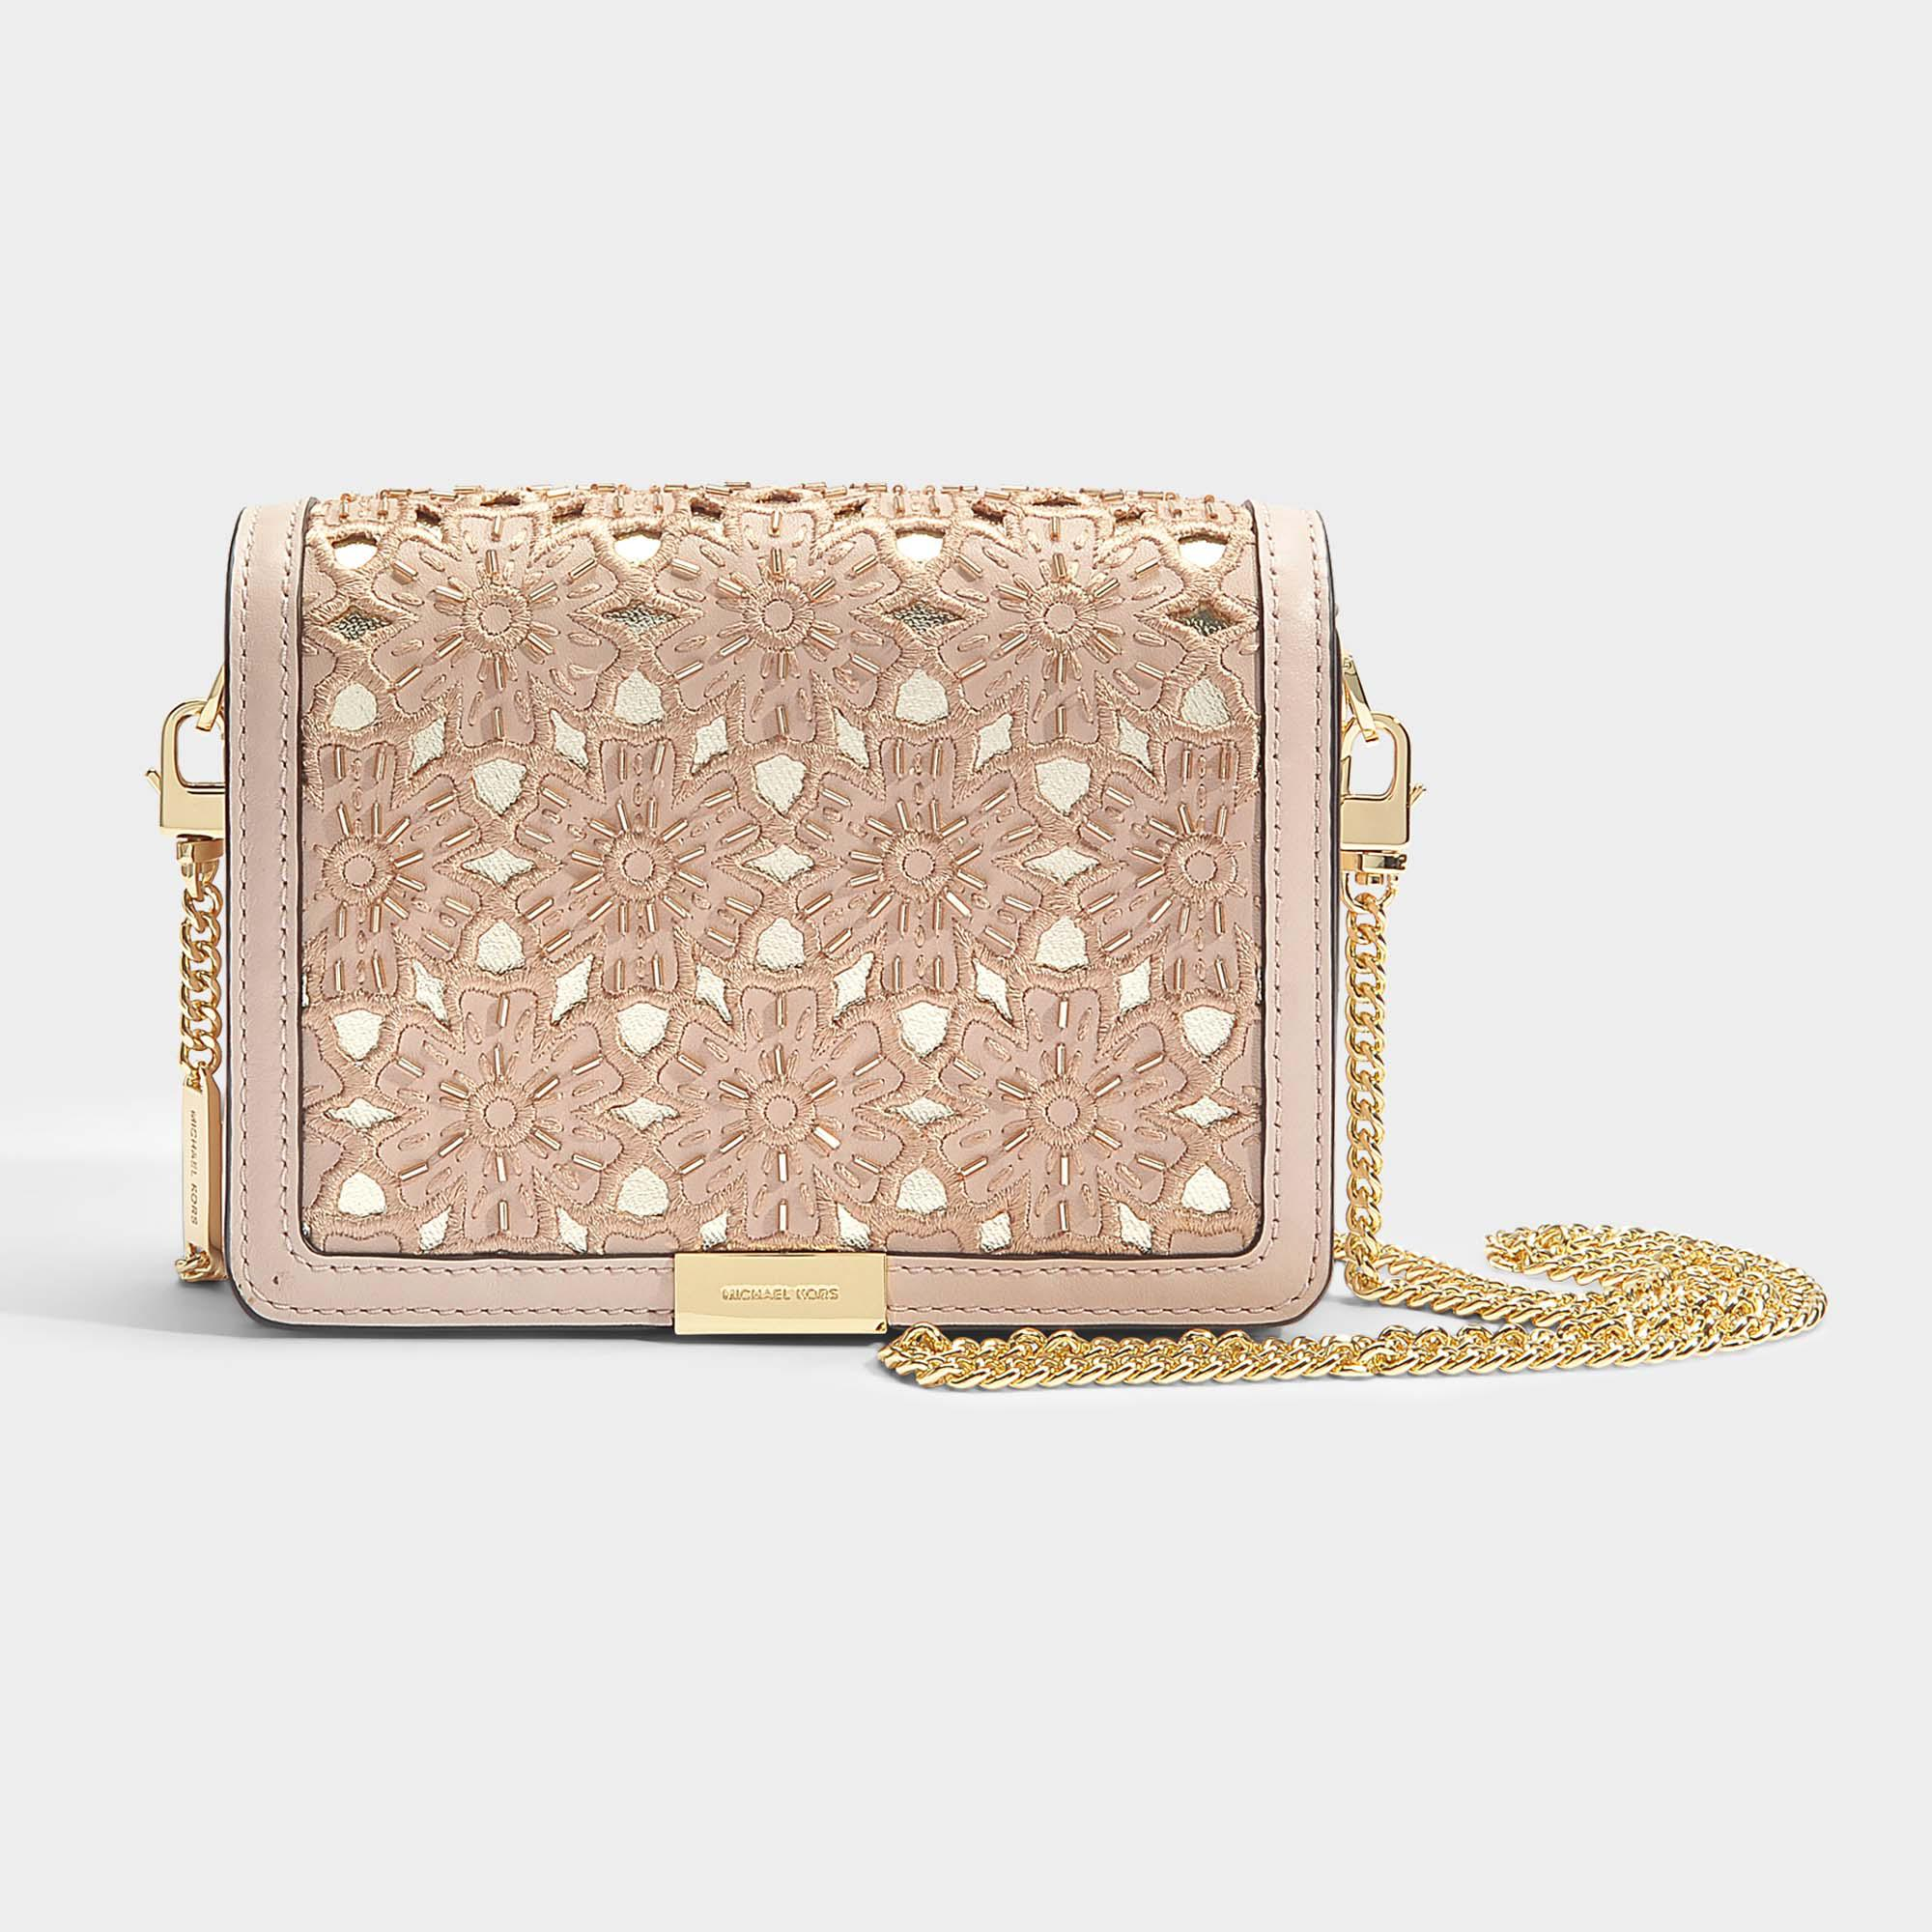 Jade Medium Gusset Clutch in Soft Pink Flower Embroidered Smooth Vegetable Leather Michael Michael Kors ycFTqED8B